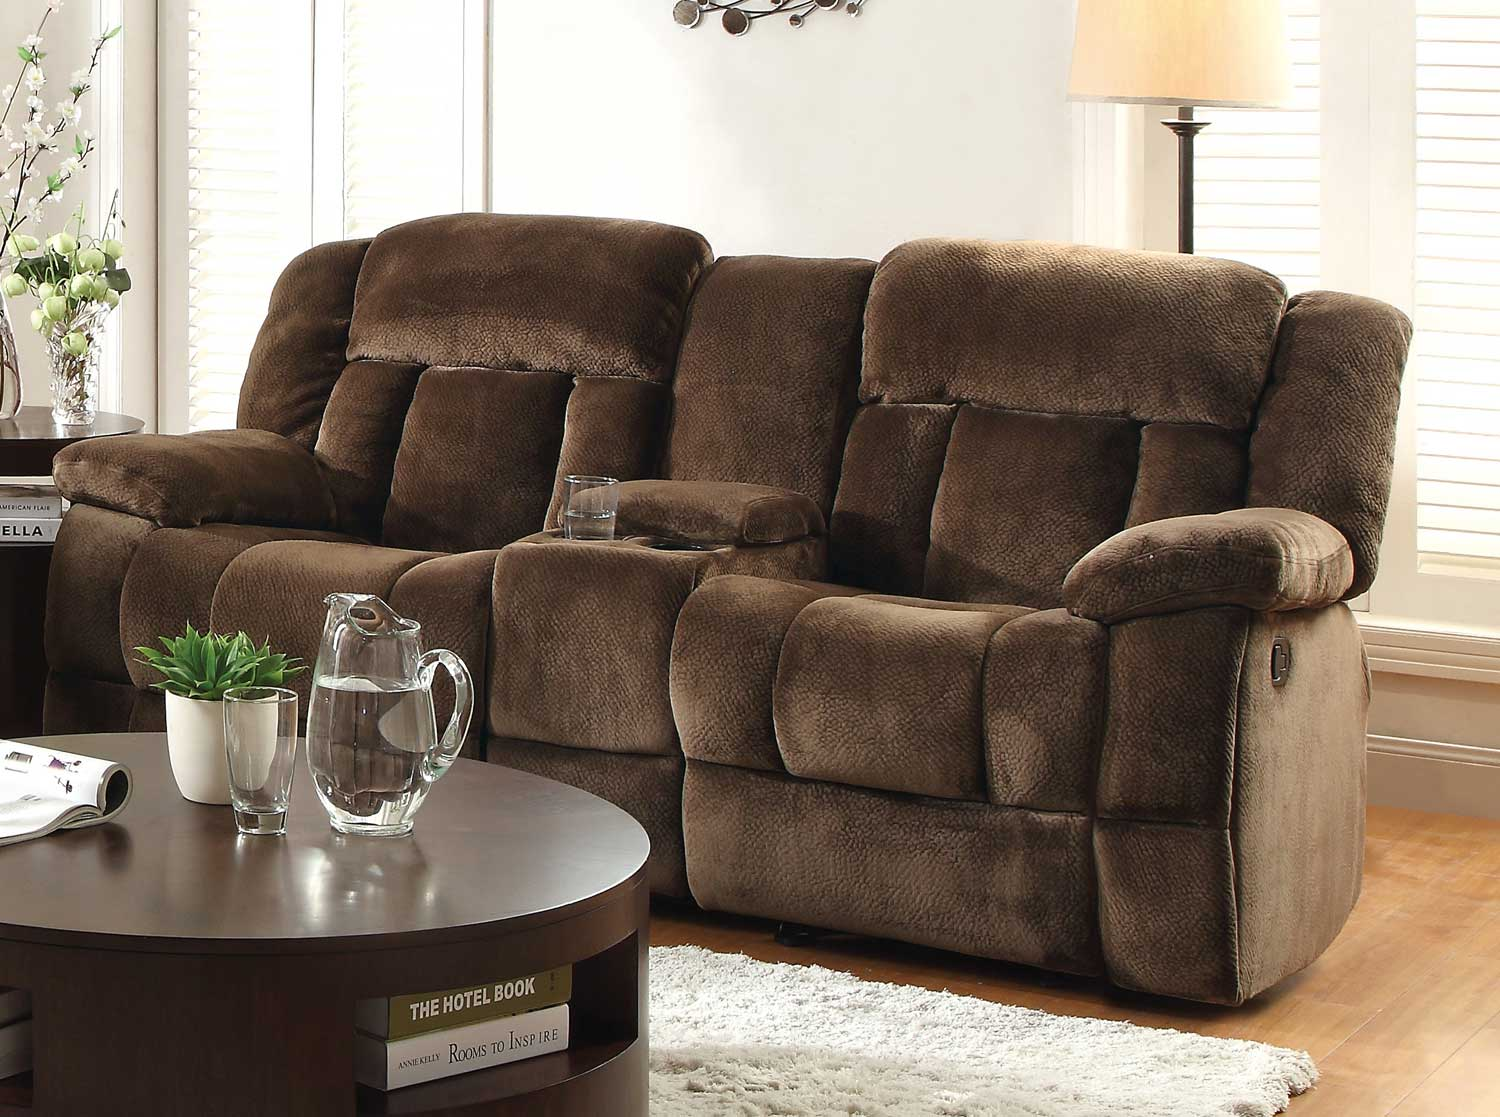 Homelegance Laurelton Double Glider Reclining Love Seat With Center Console    Chocolate   Textured Plush Microfiber